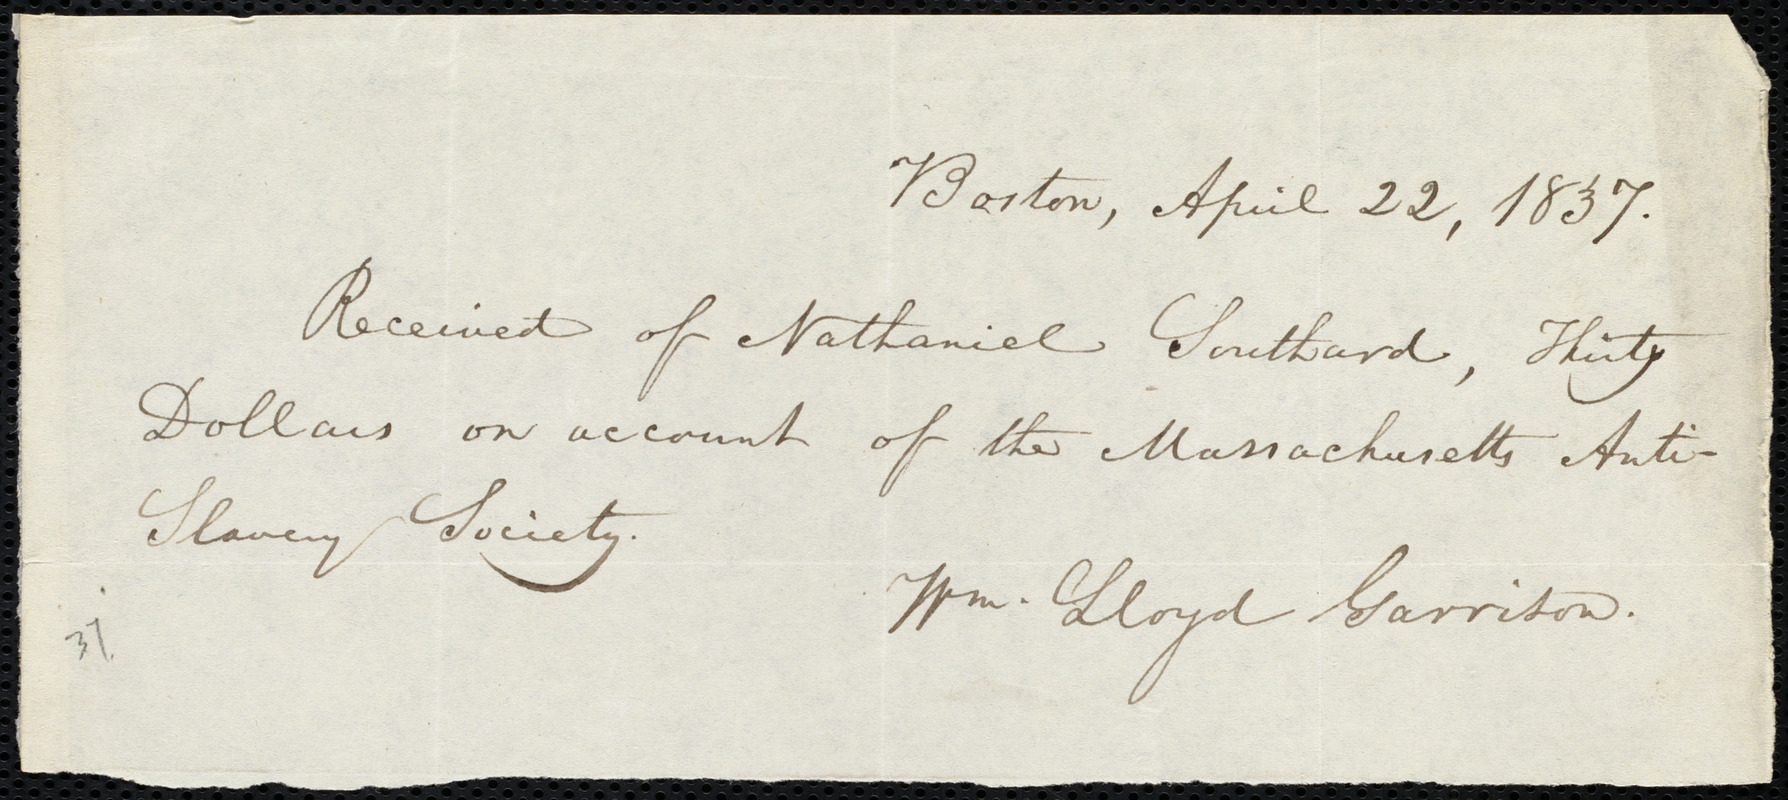 Receipt from William Lloyd Garrison, Boston, [Mass.], to Nathaniel Southard, April 22, 1837